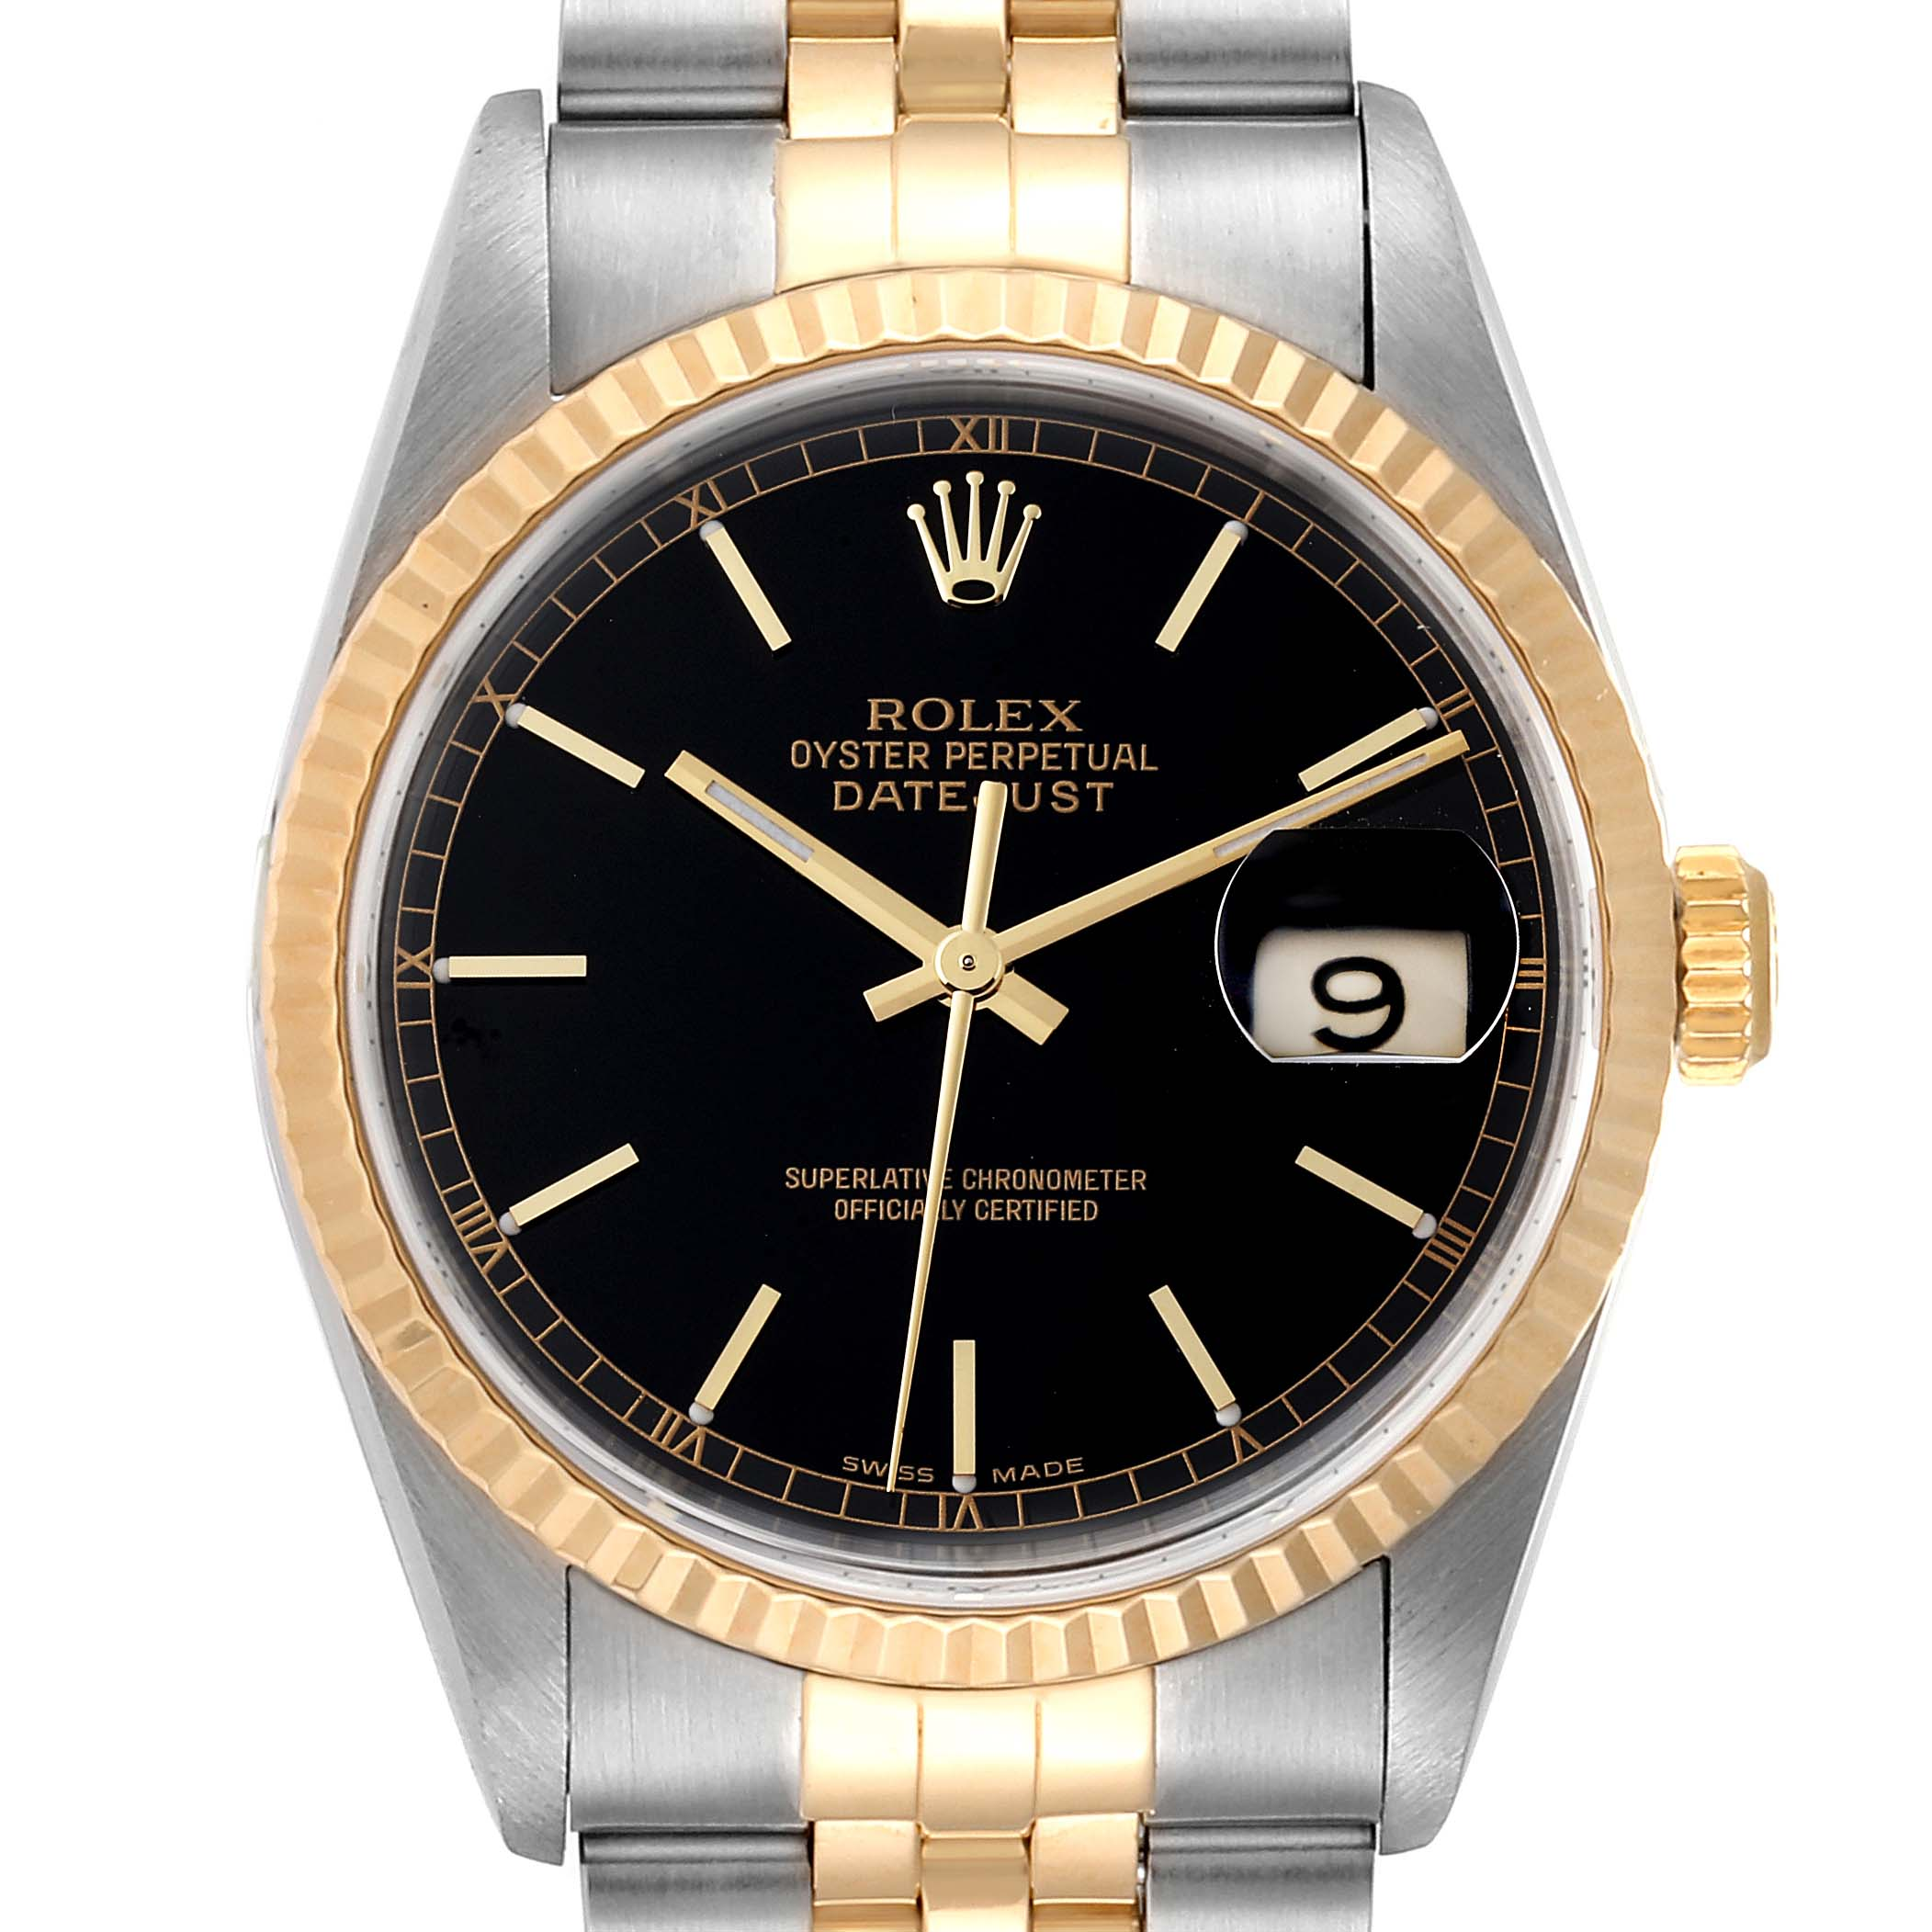 Rolex Datejust Steel Yellow Gold Black Dial Mens Watch 16233 Box Papers